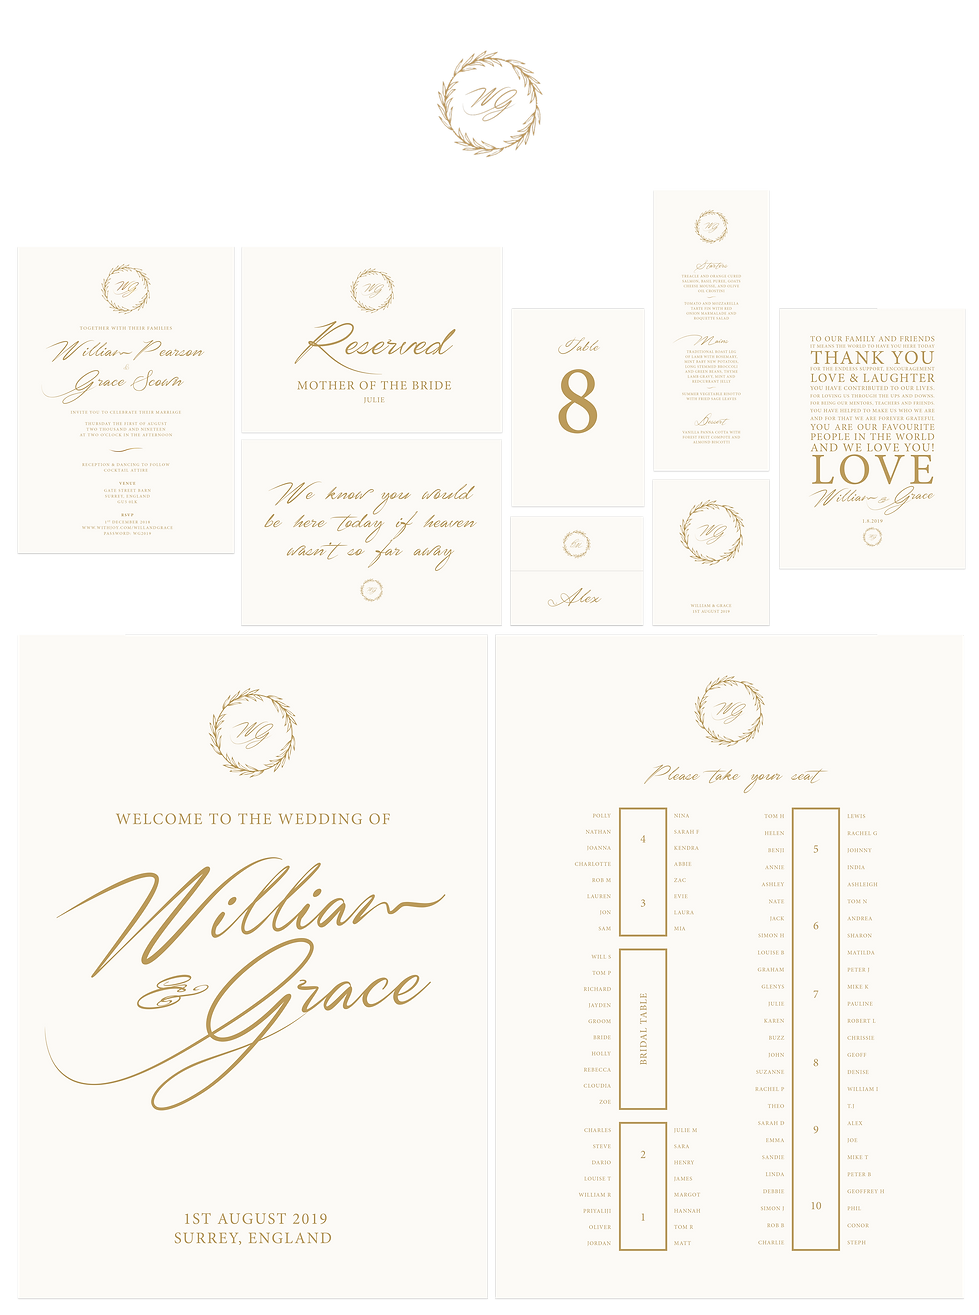 W&G-Wedding-collateral-display-2.png